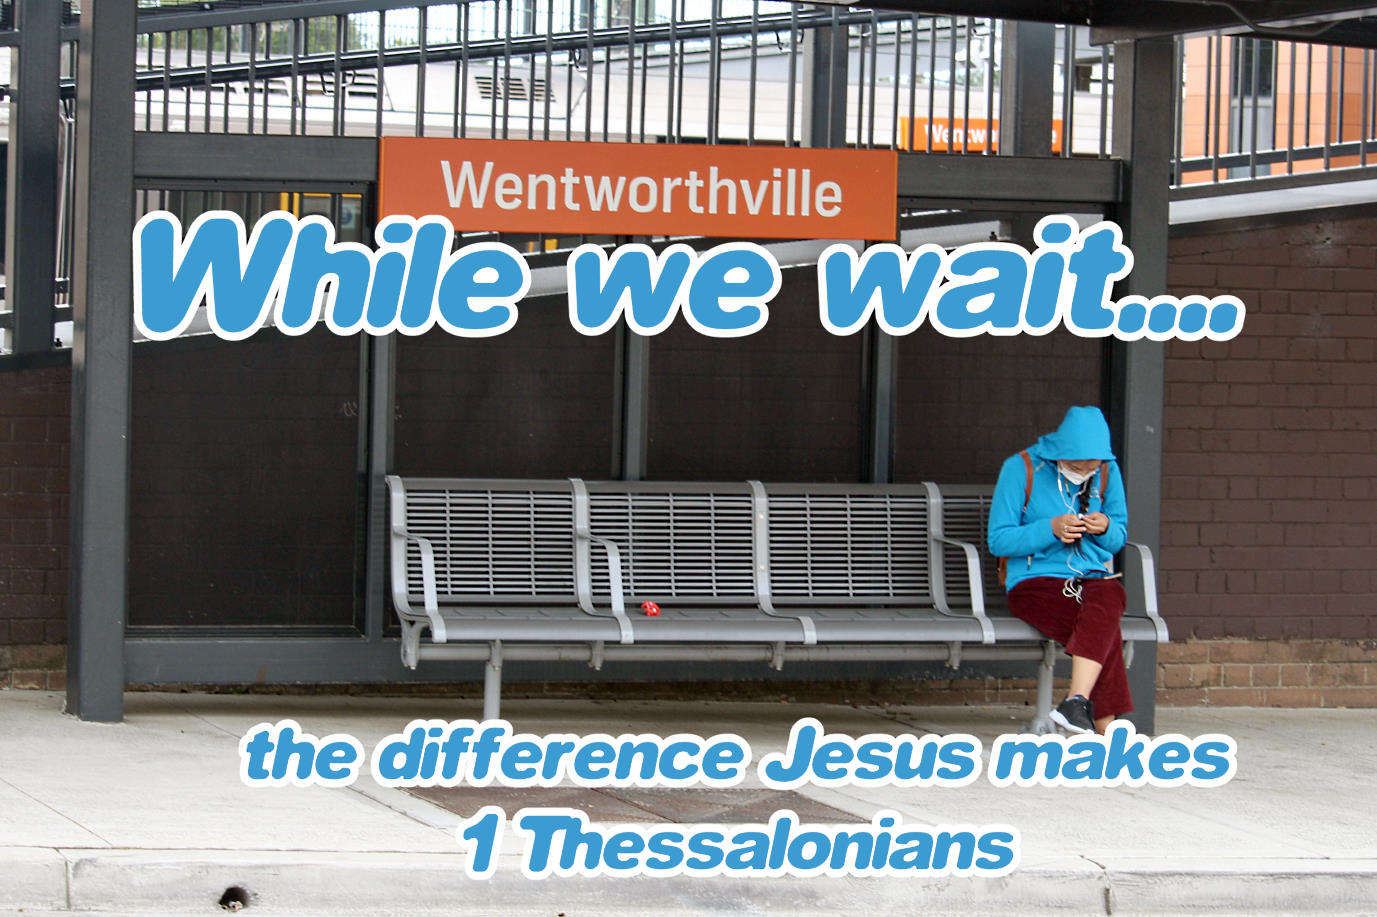 While we wait... The difference Jesus makes. 1 Thessalonians.